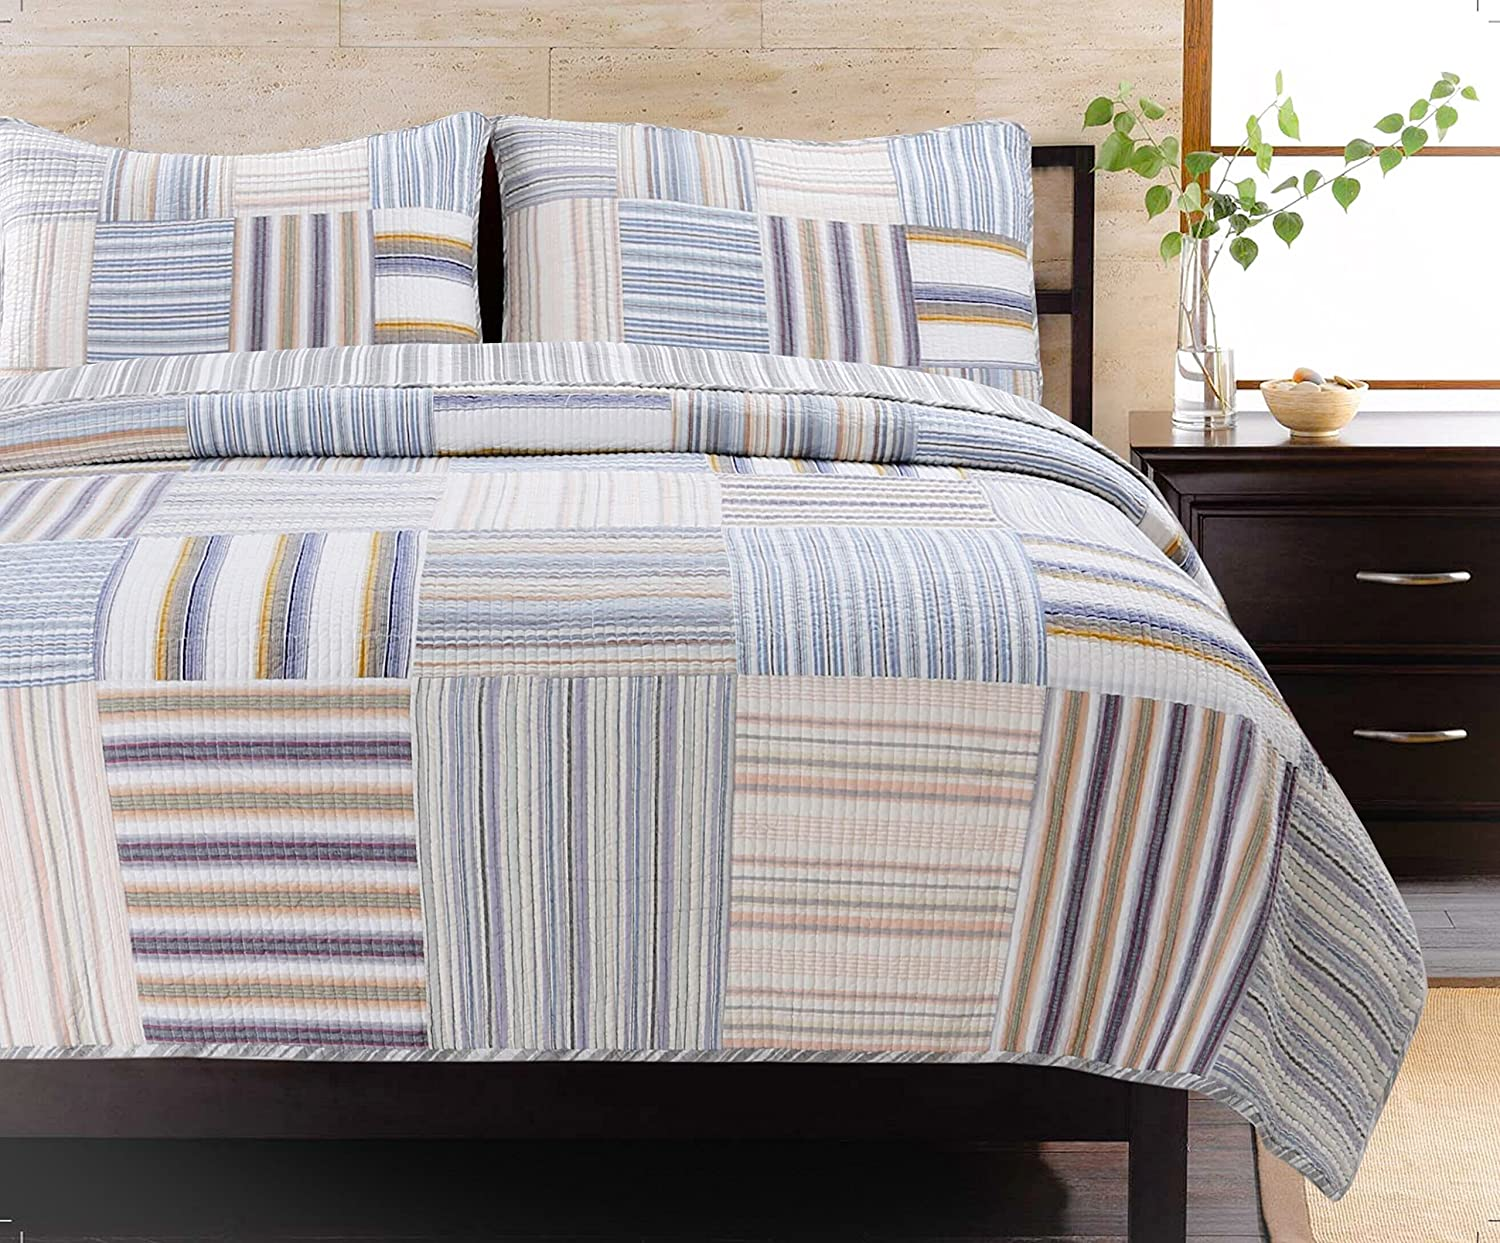 Cozy Line Home Fashions Kevin Quilt Bedding Set, Blue Yellow Grey Brown Plaid Striped Patchwork 100% Cotton, Reversible Coverlet, Bedspread for Boy/Men/Him(Kevin Patchwork, Queen -3 Piece)